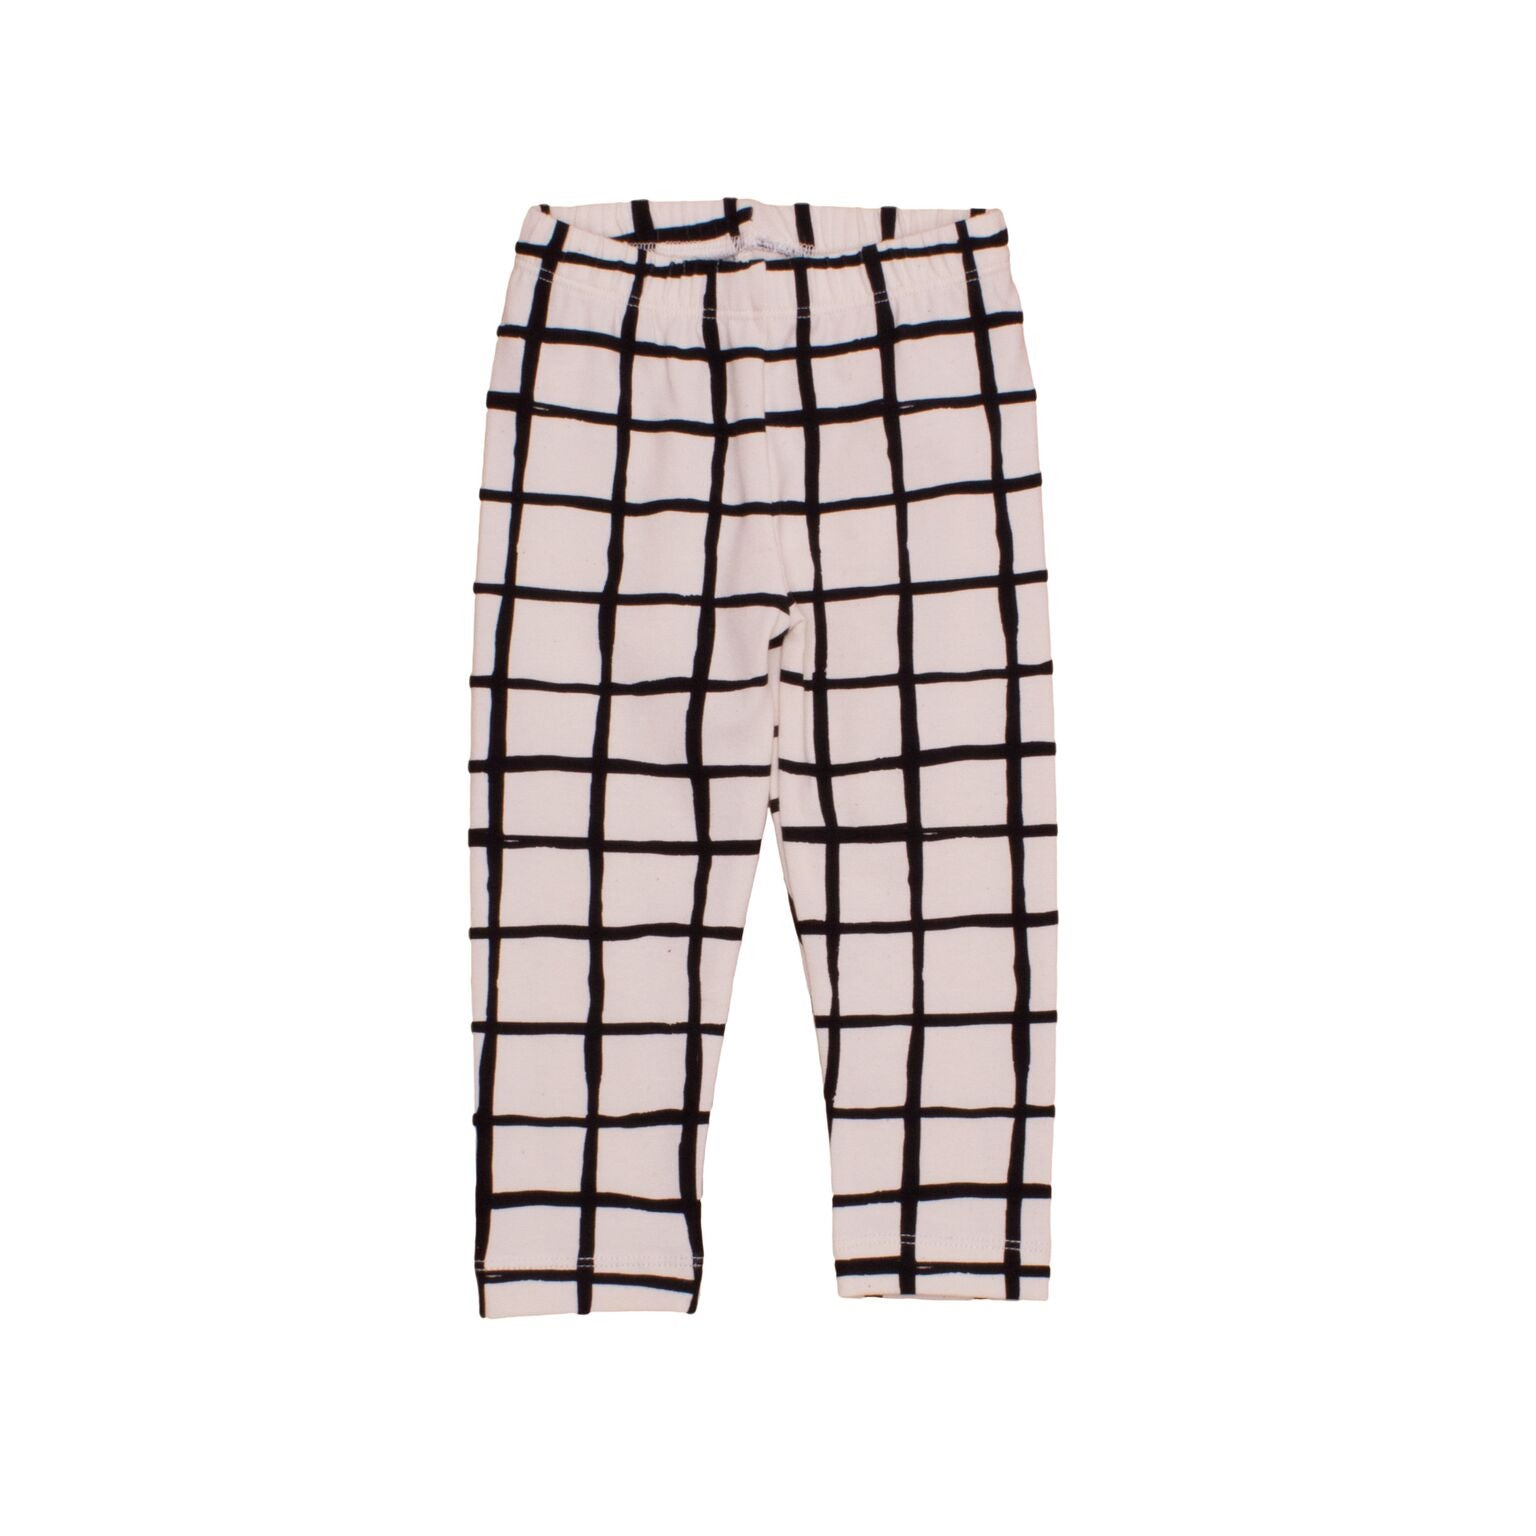 Noé & Zoë Black Grid Baby Leggings